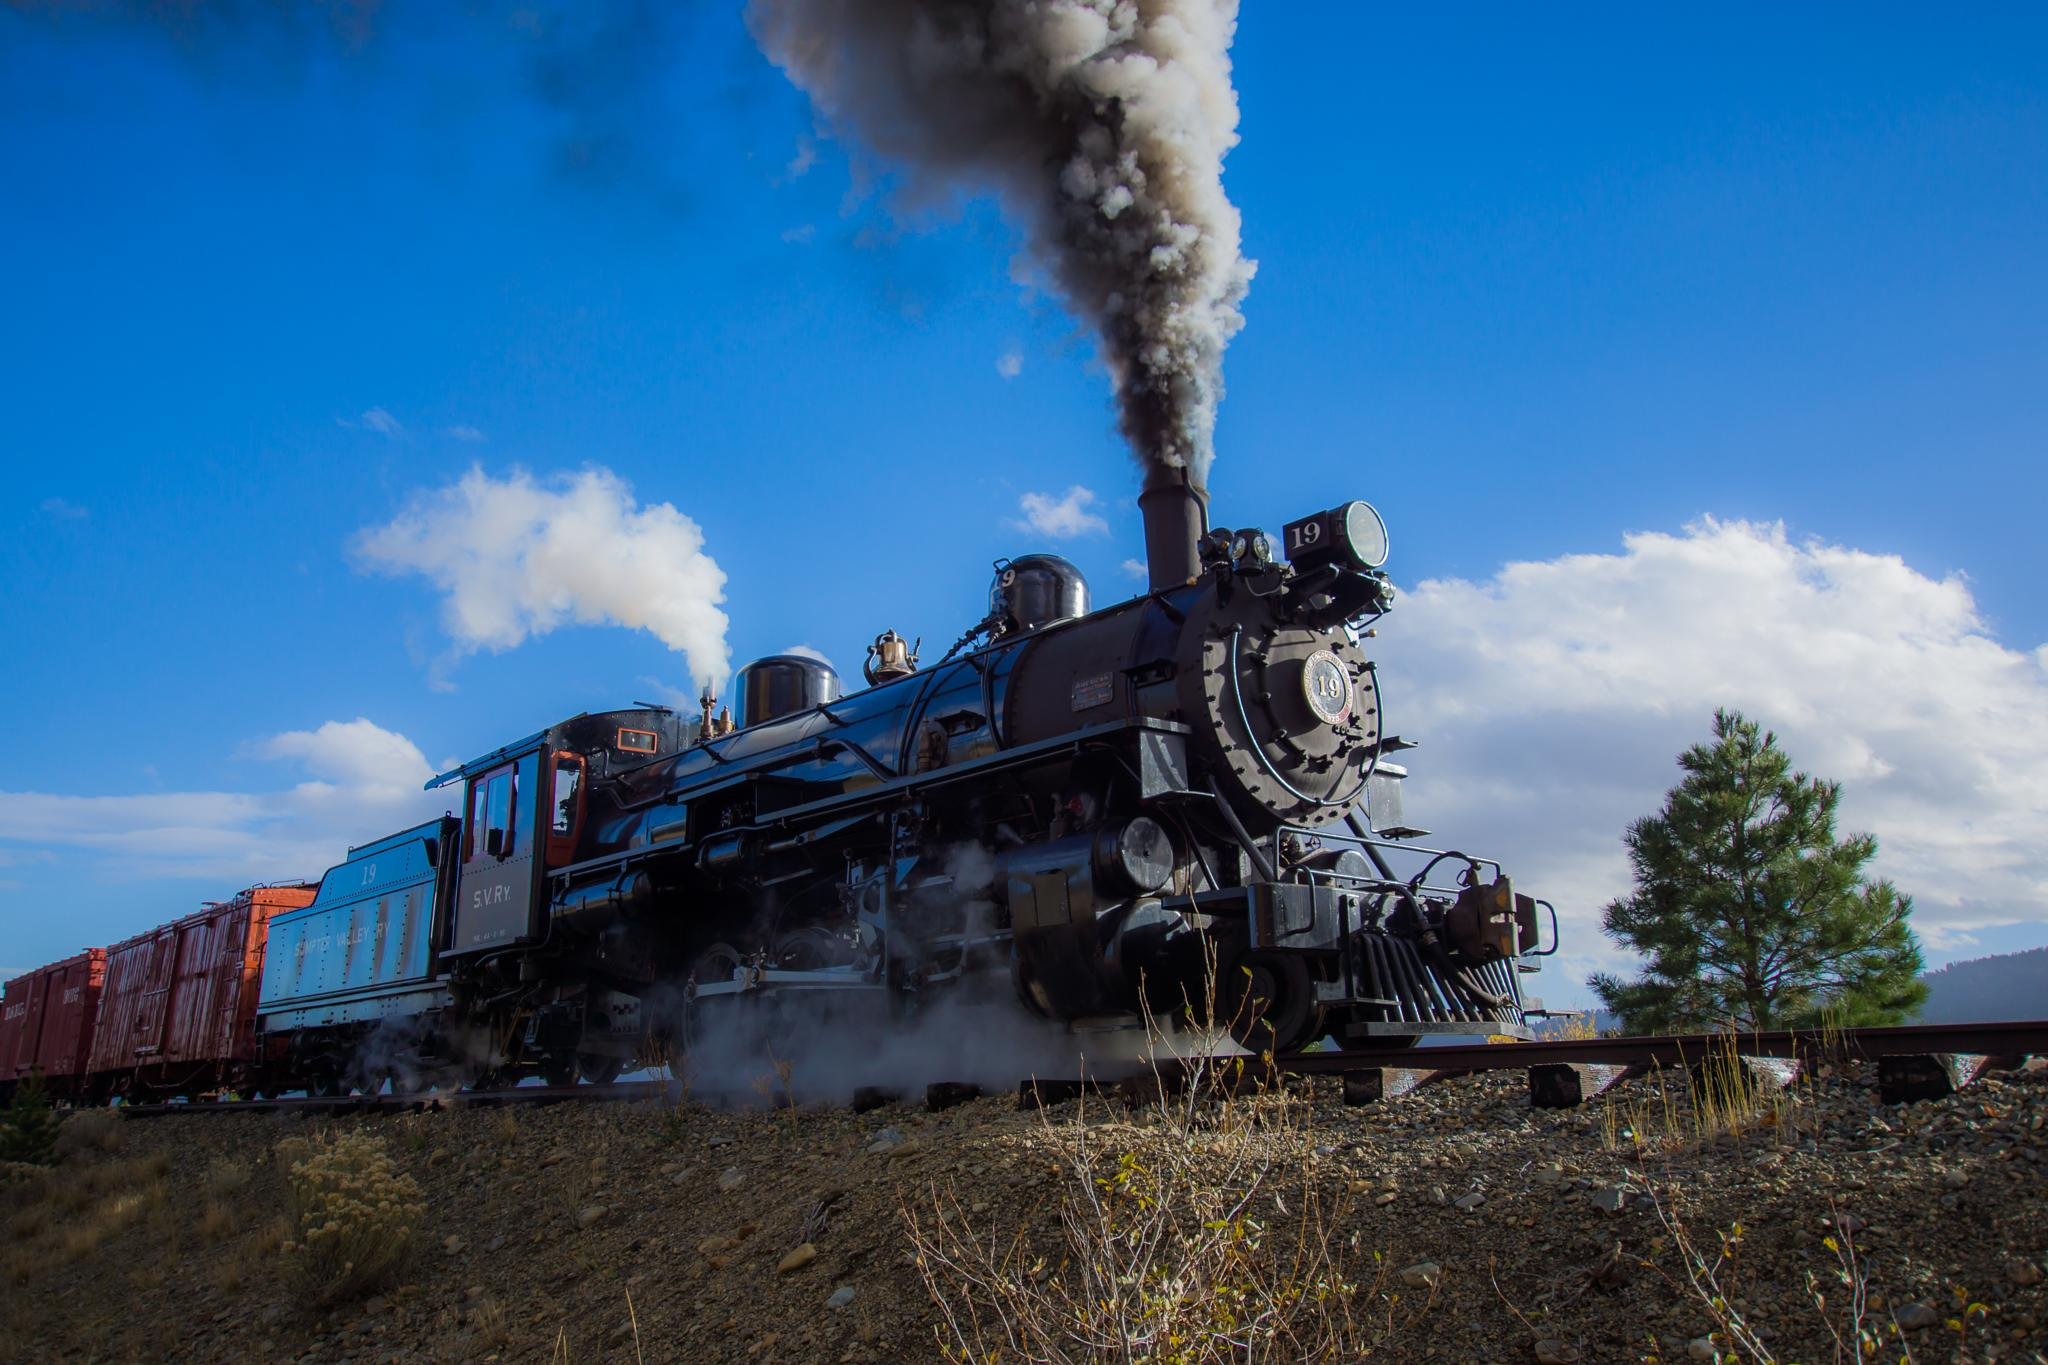 Sumpter Valley Train by Ranbud